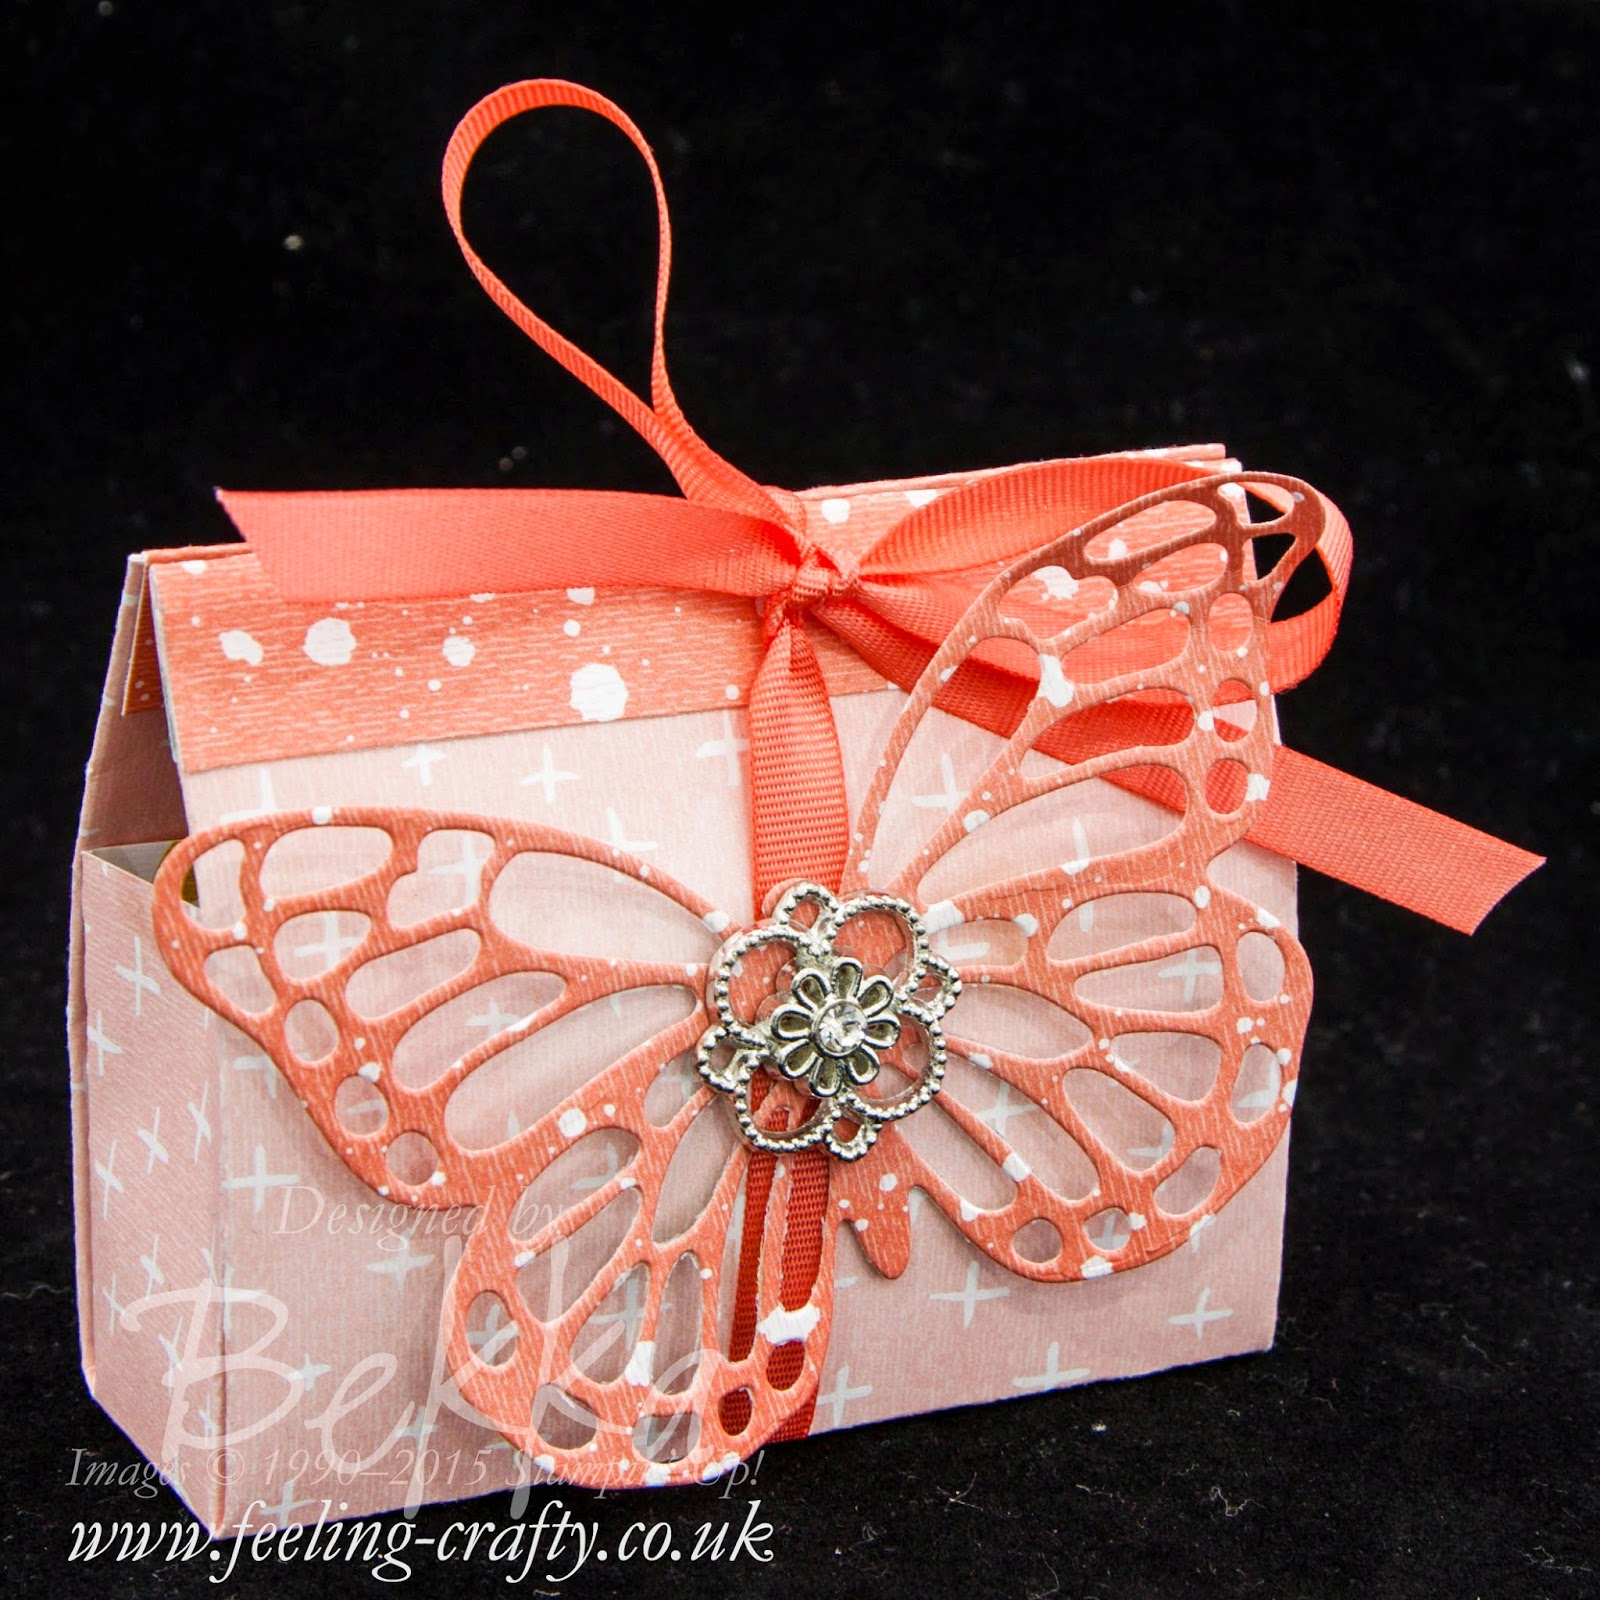 Butterfly Basics Gift Bag - check out this blog for lots of great ideas